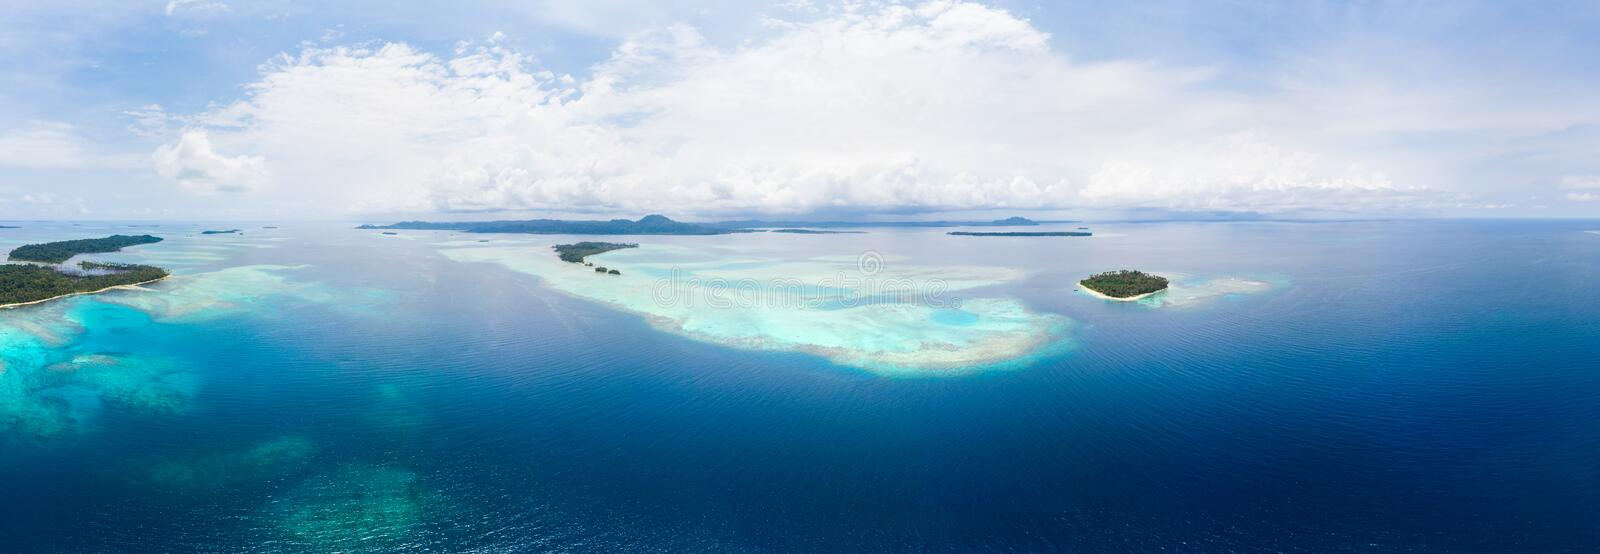 Aerial view Banyak Islands Sumatra tropical archipelago Indonesia, coral reef beach turquoise water. Travel destination, diving stock photos